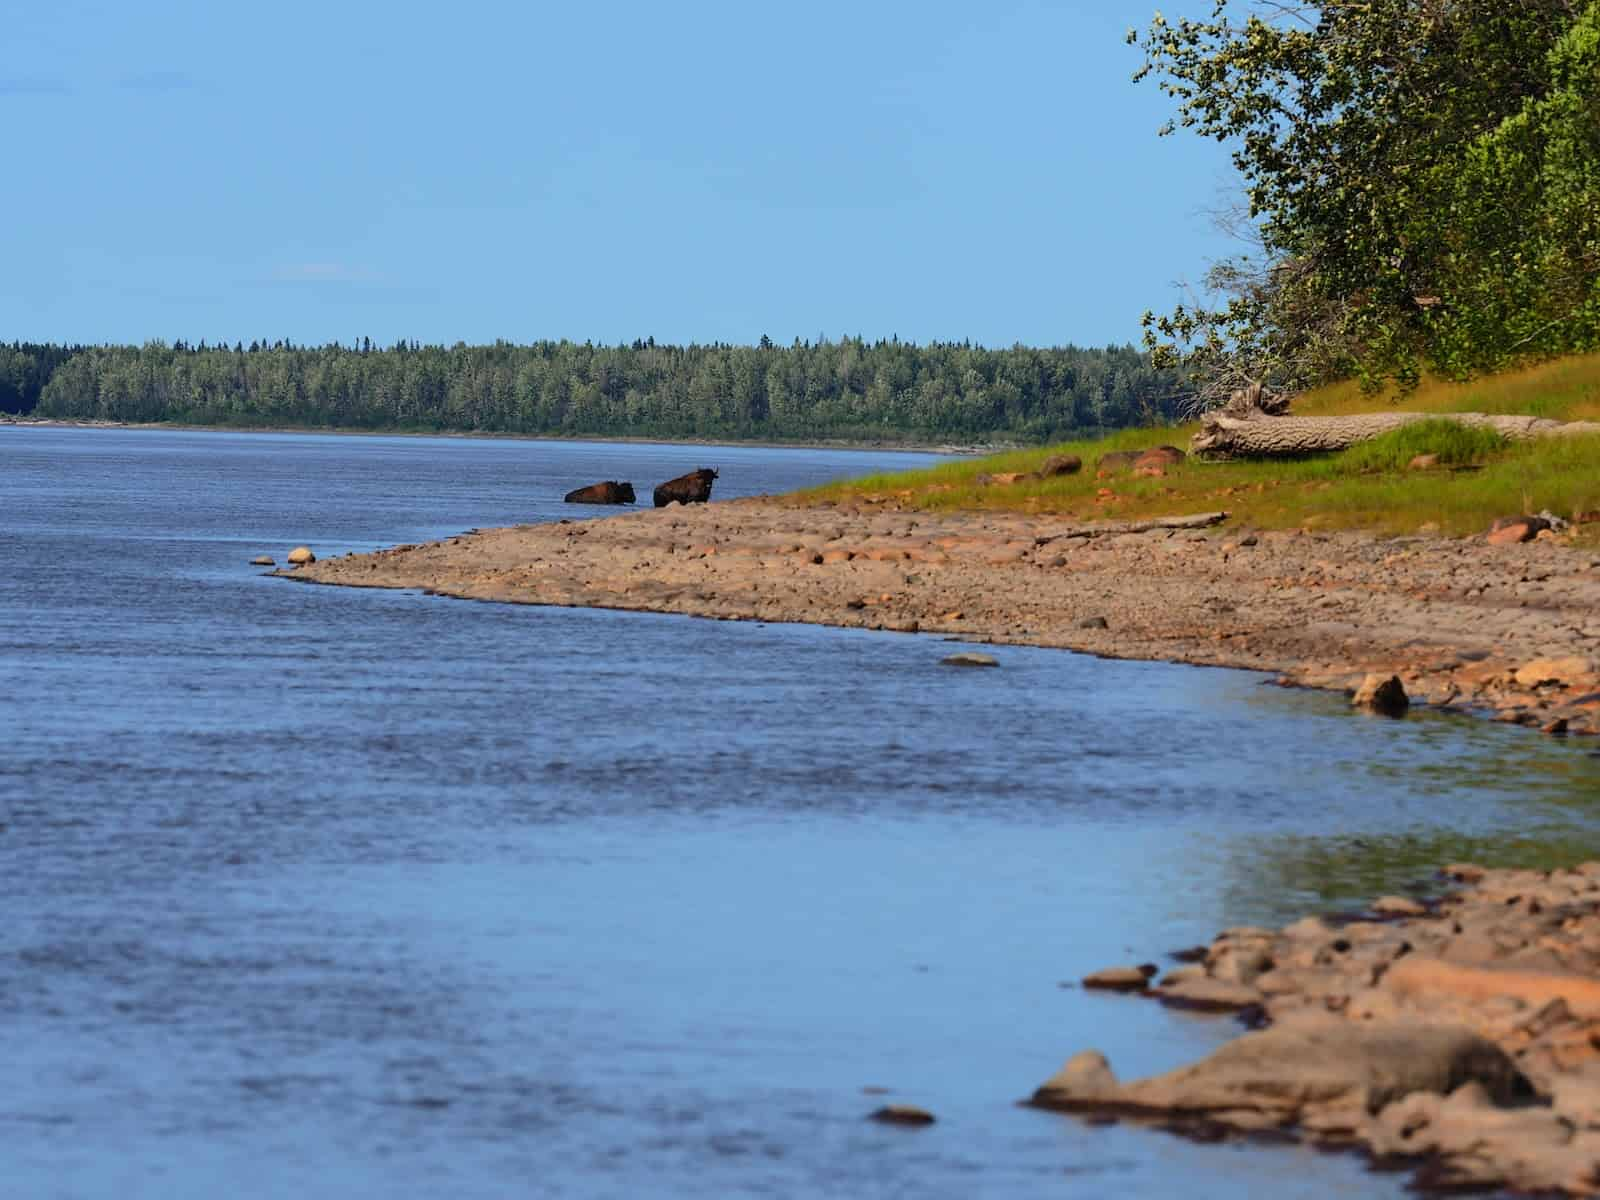 Nahanni River by Canoe: Bison on the banks of a river